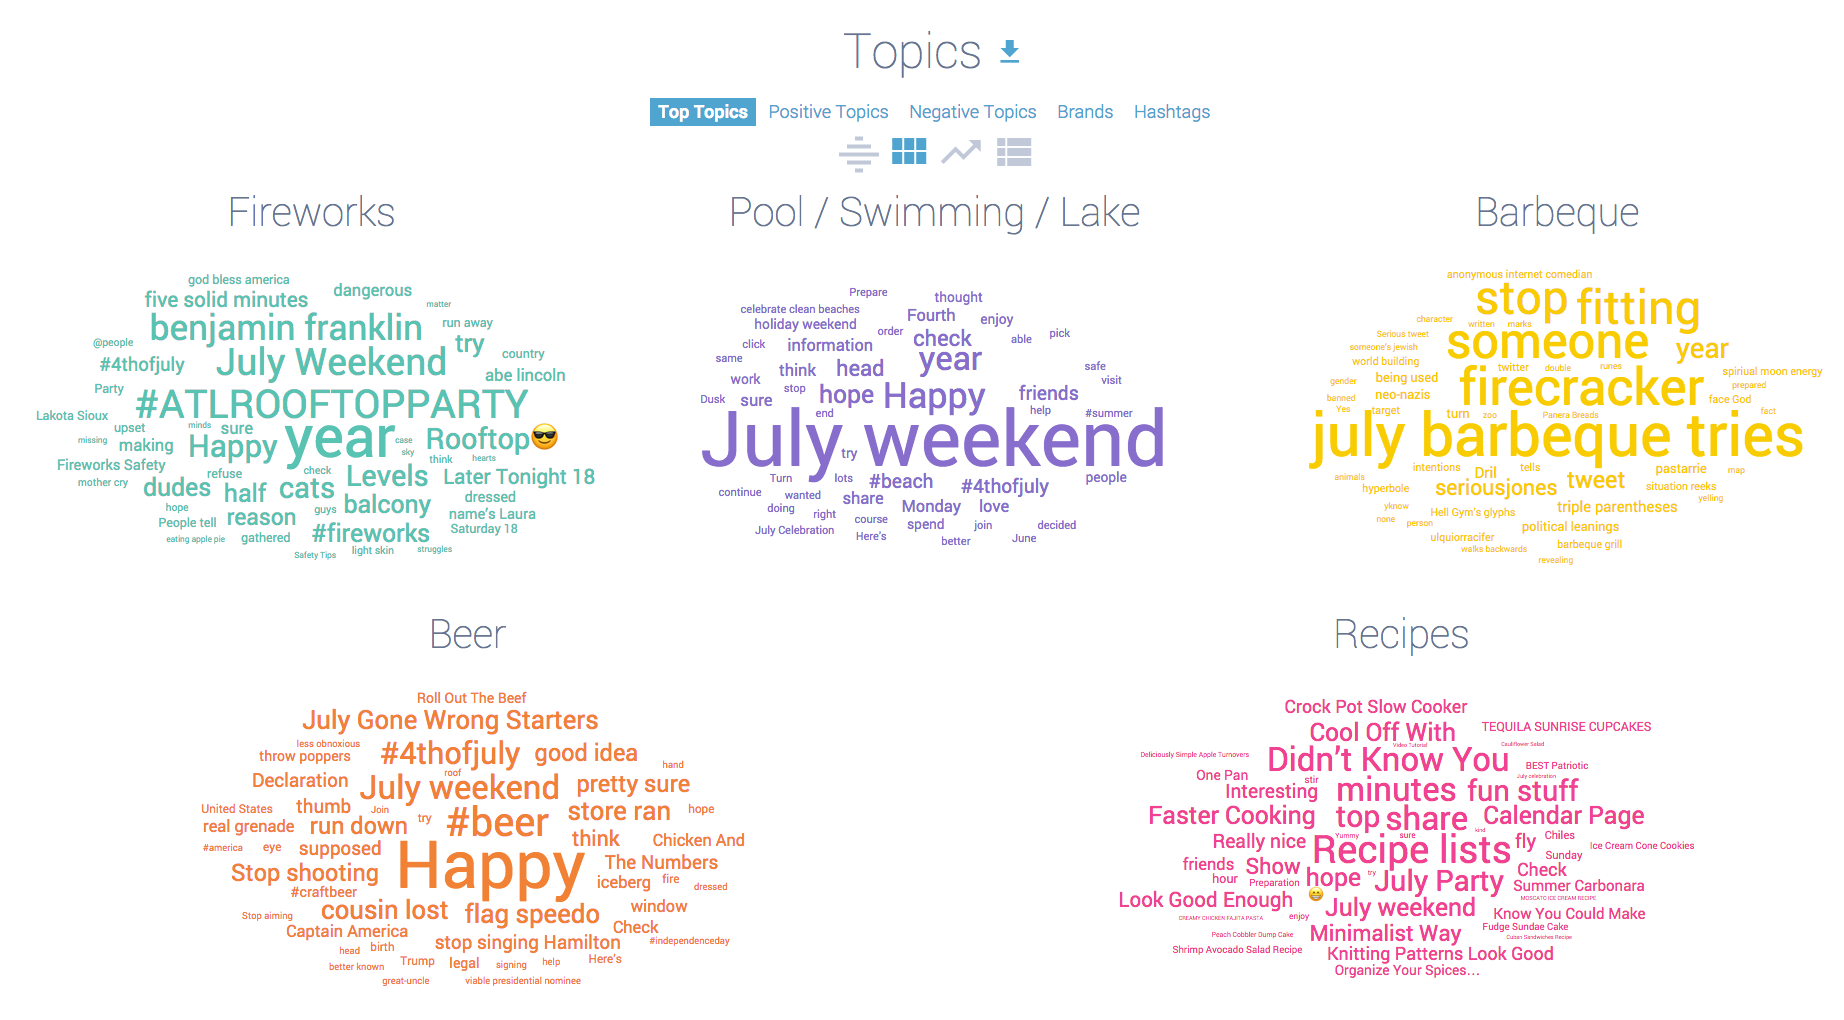 4th of july topic clouds top Screen Shot 2017-06-20 at 10.25.40 AM-1.png